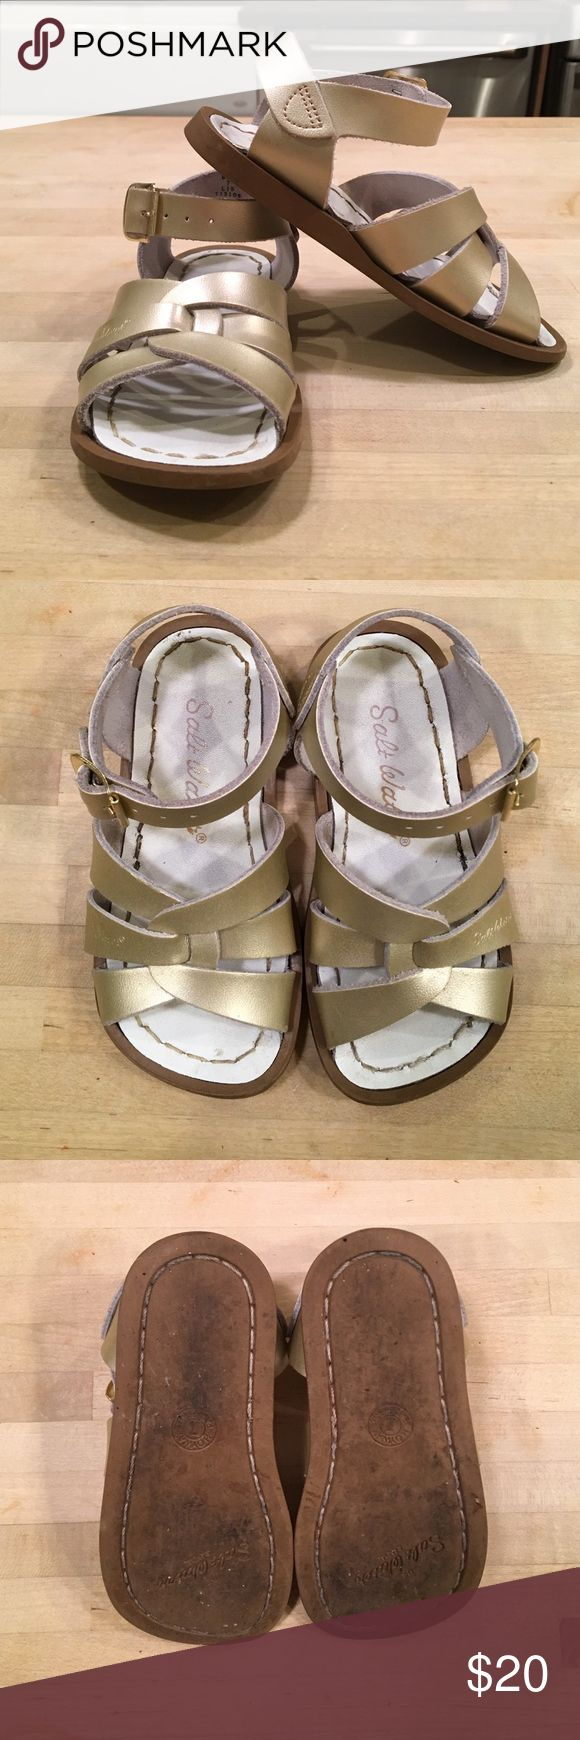 Gold Saltwater Sandals 7 GUC Gold Saltwater Sandals - size 7 for a toddler/young kid - fantastic sandals that are meant to get wet, have good traction, stay on well and are cute - good used condition with some wear on the soles Salt Water Sandals by Hoy Shoes Sandals & Flip Flops